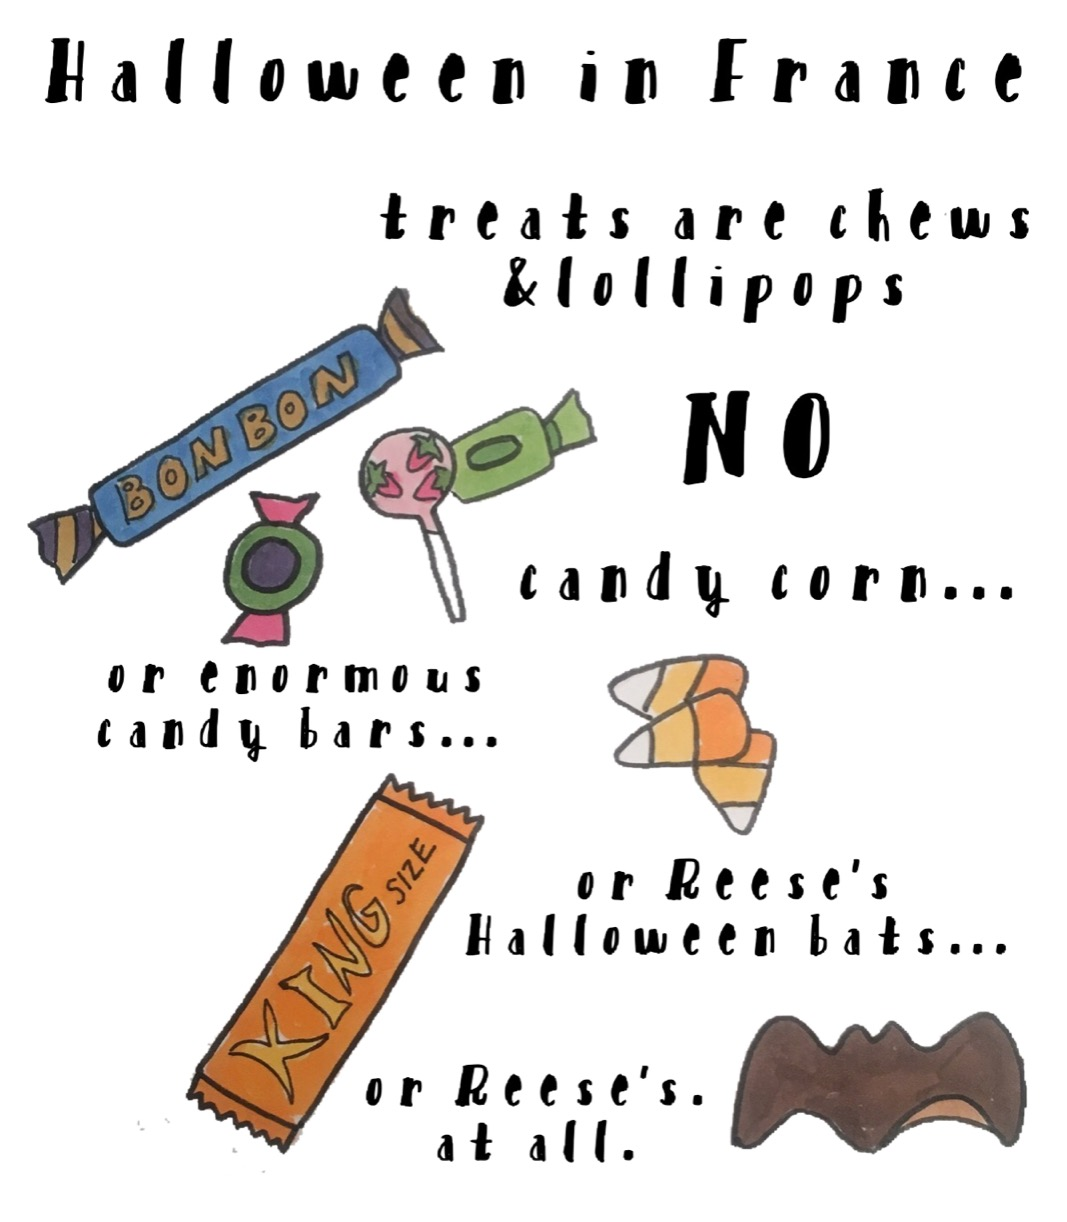 Halloween candy in France